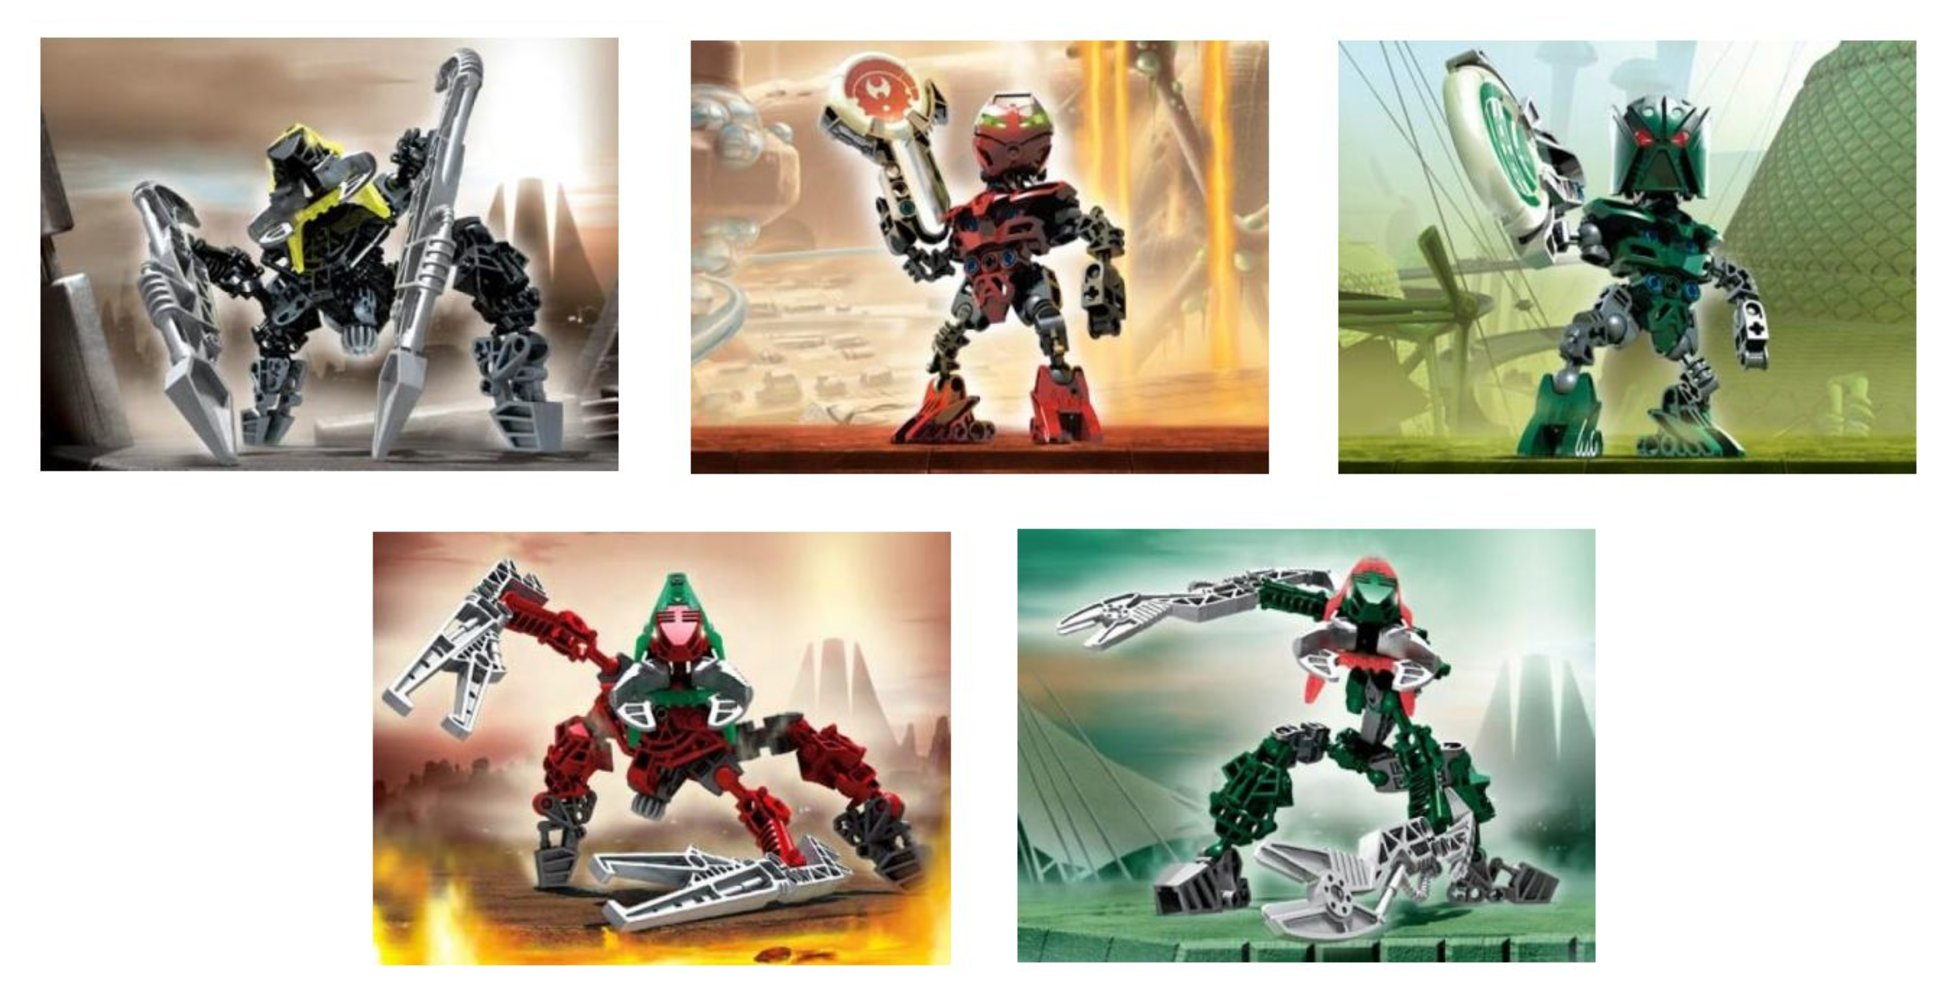 Matoran / Vahki Co-Pack 1 (contains 8607 8611 8614 8616 8618)